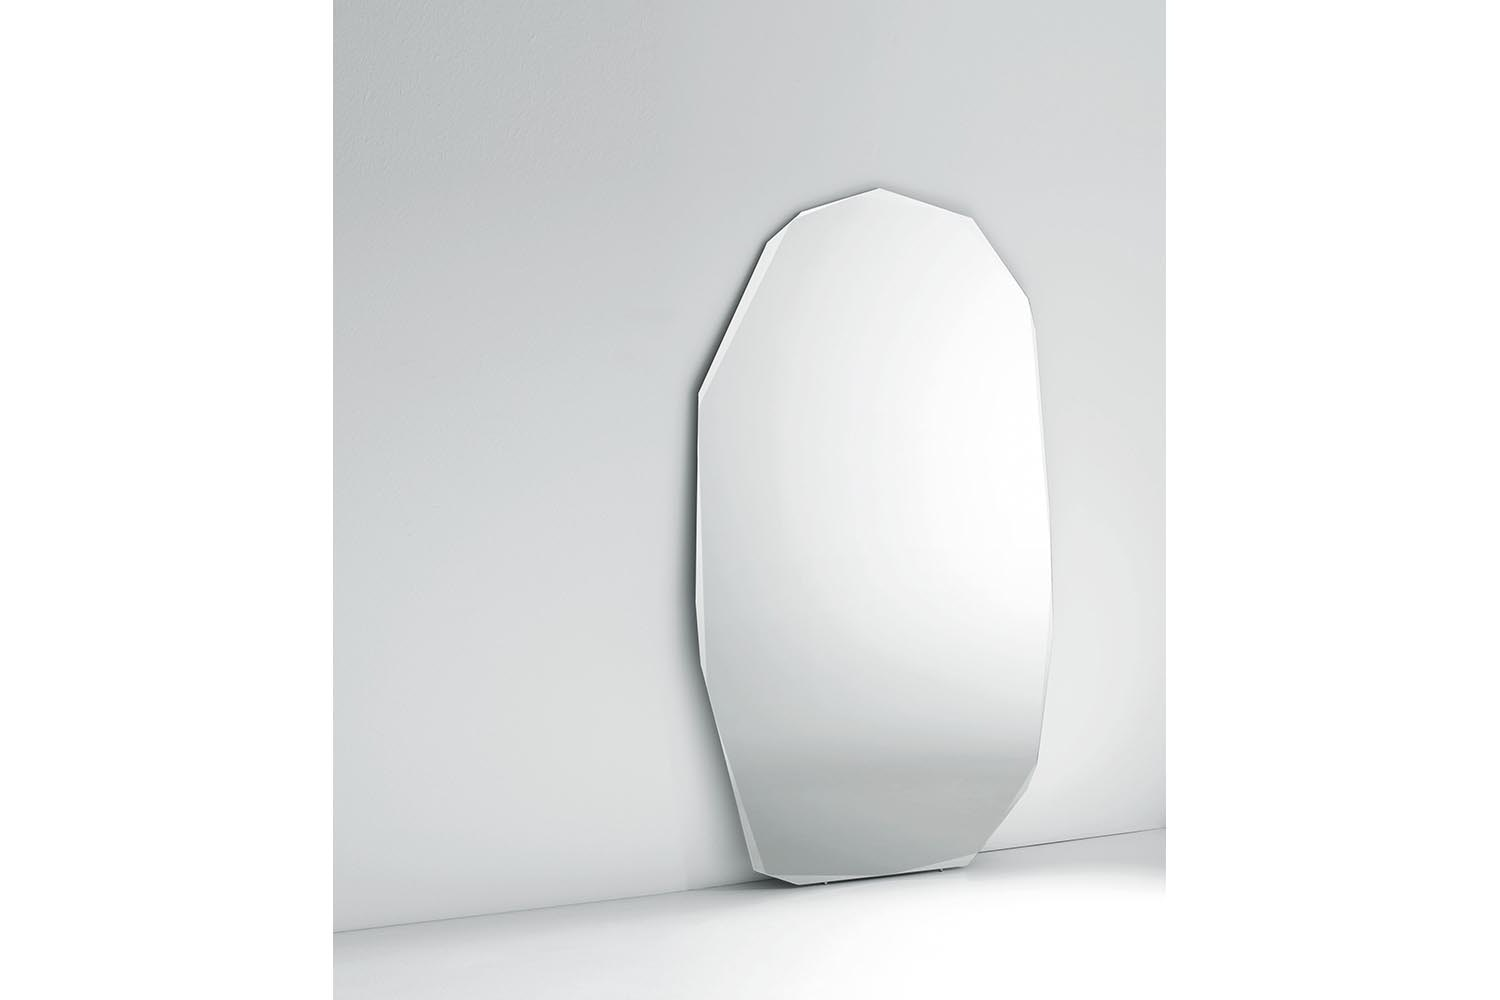 Kooh-I-Noor Specchi Large Mirror by Piero Lissoni for Glas Italia